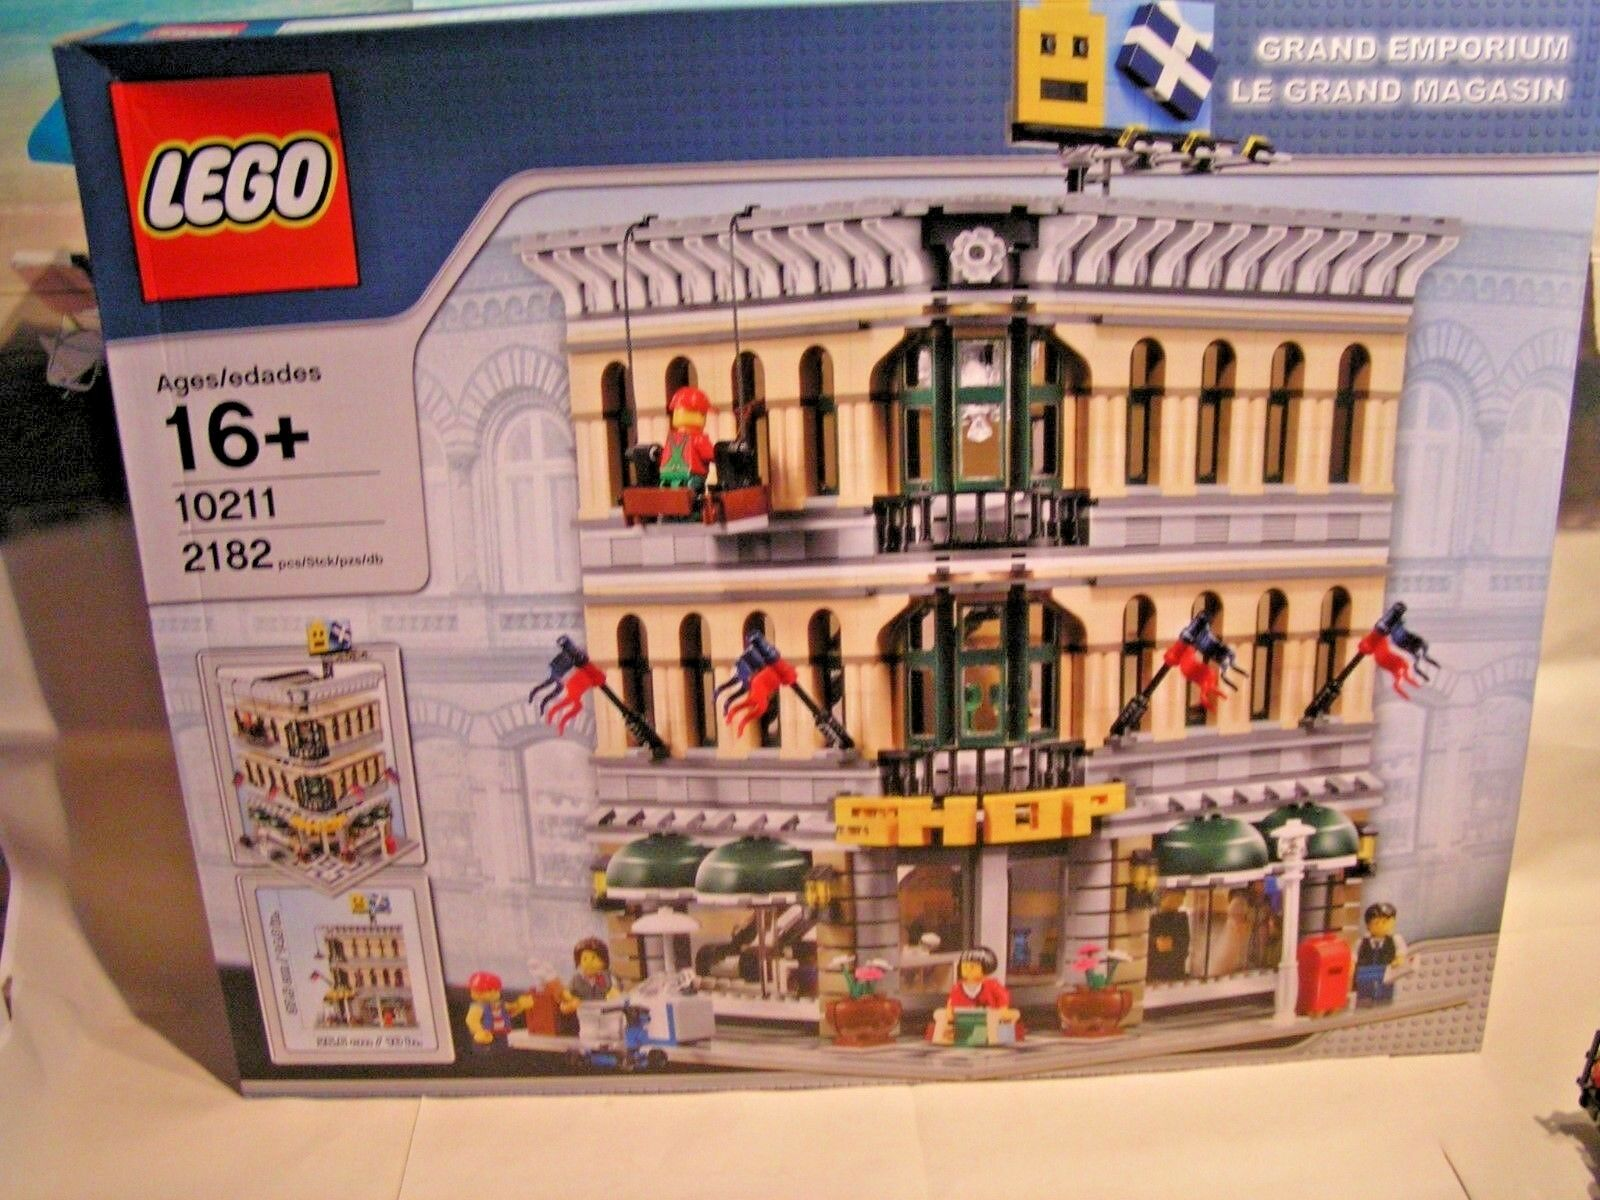 LEGO TOWN  -  GRAND EMPORIUM - LE GRAND MAGASIN  ref. 10211